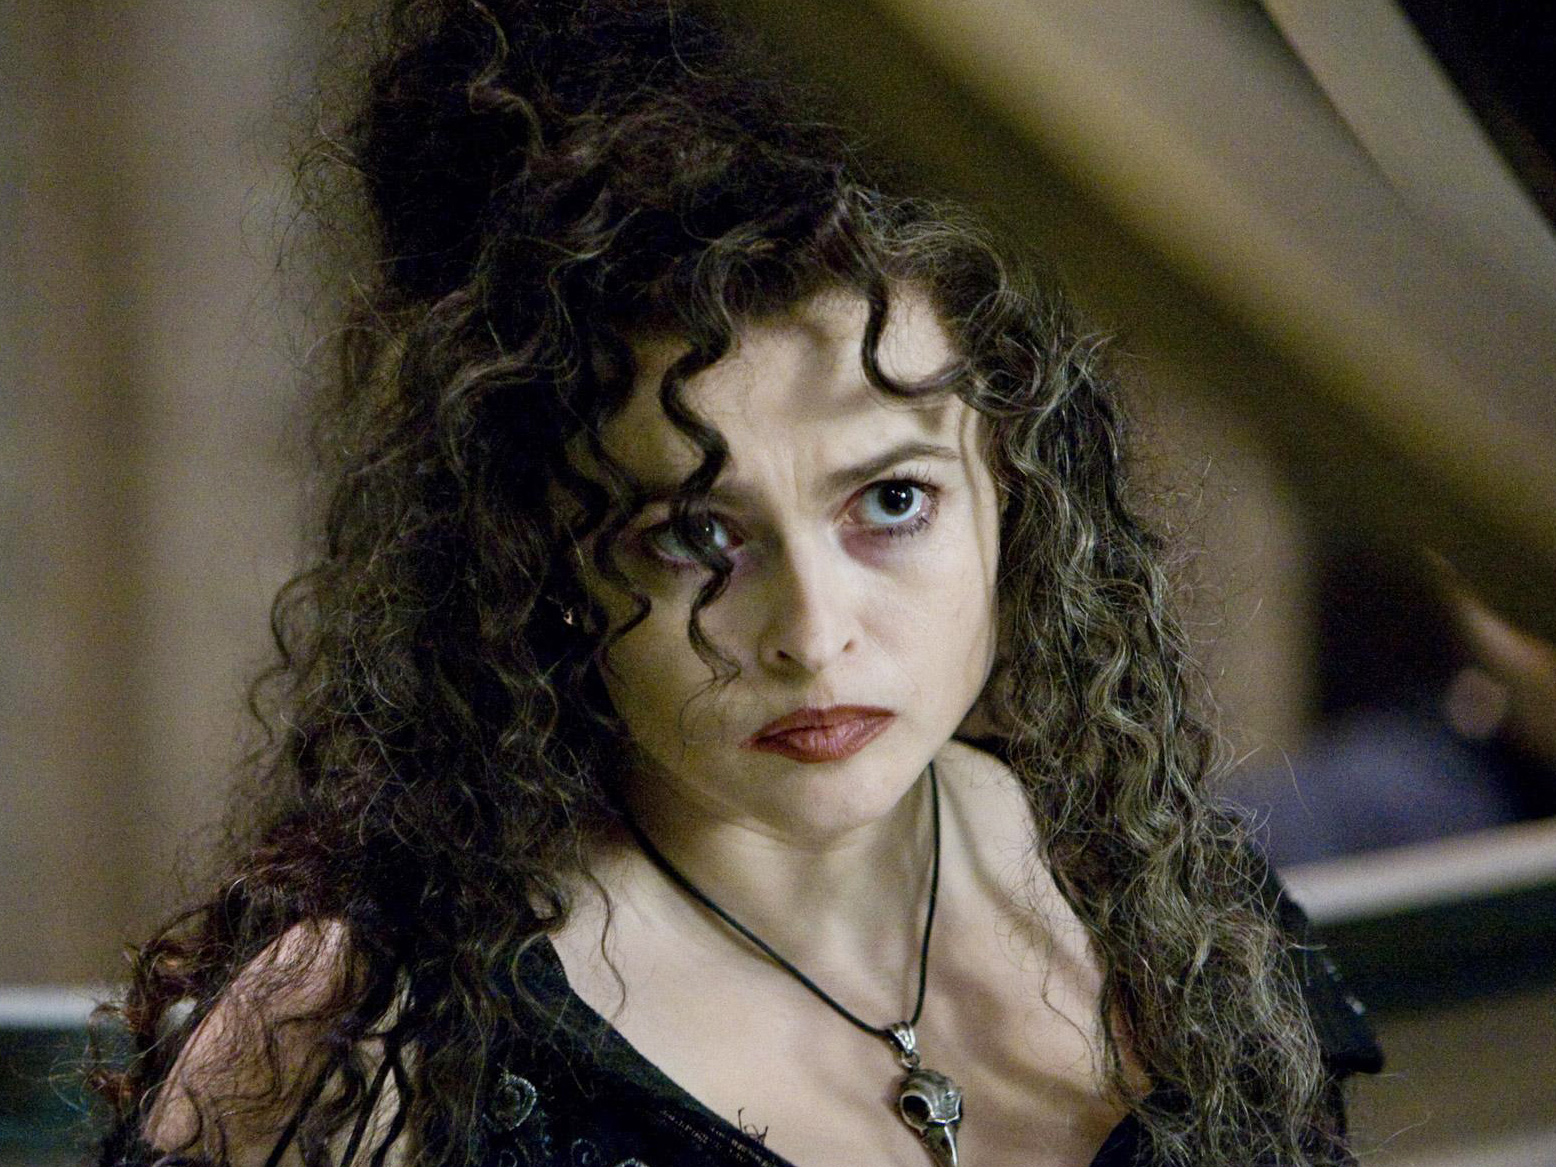 Bellatrix from Harry Potter